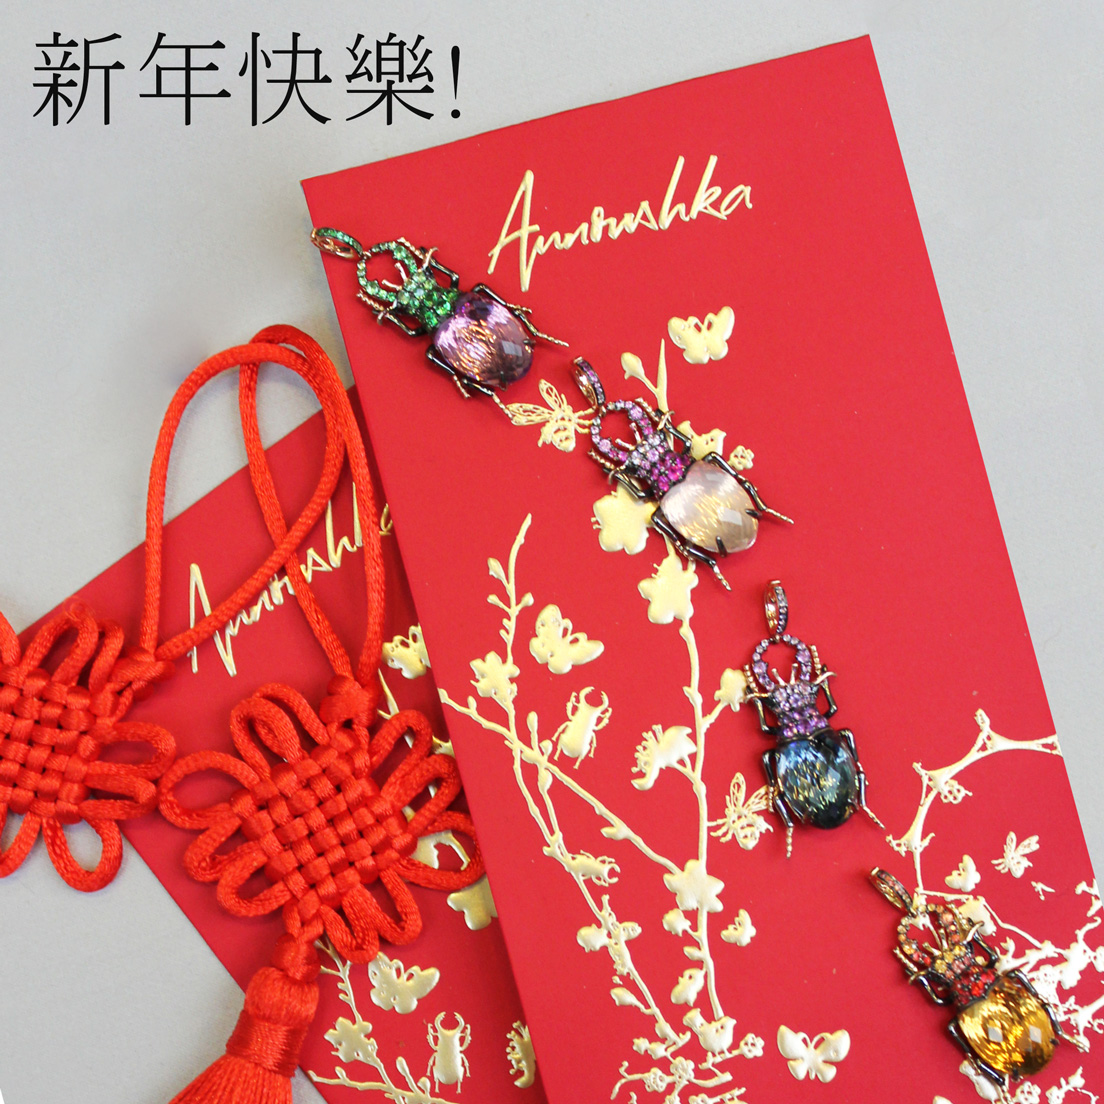 Annoushka seeds collection